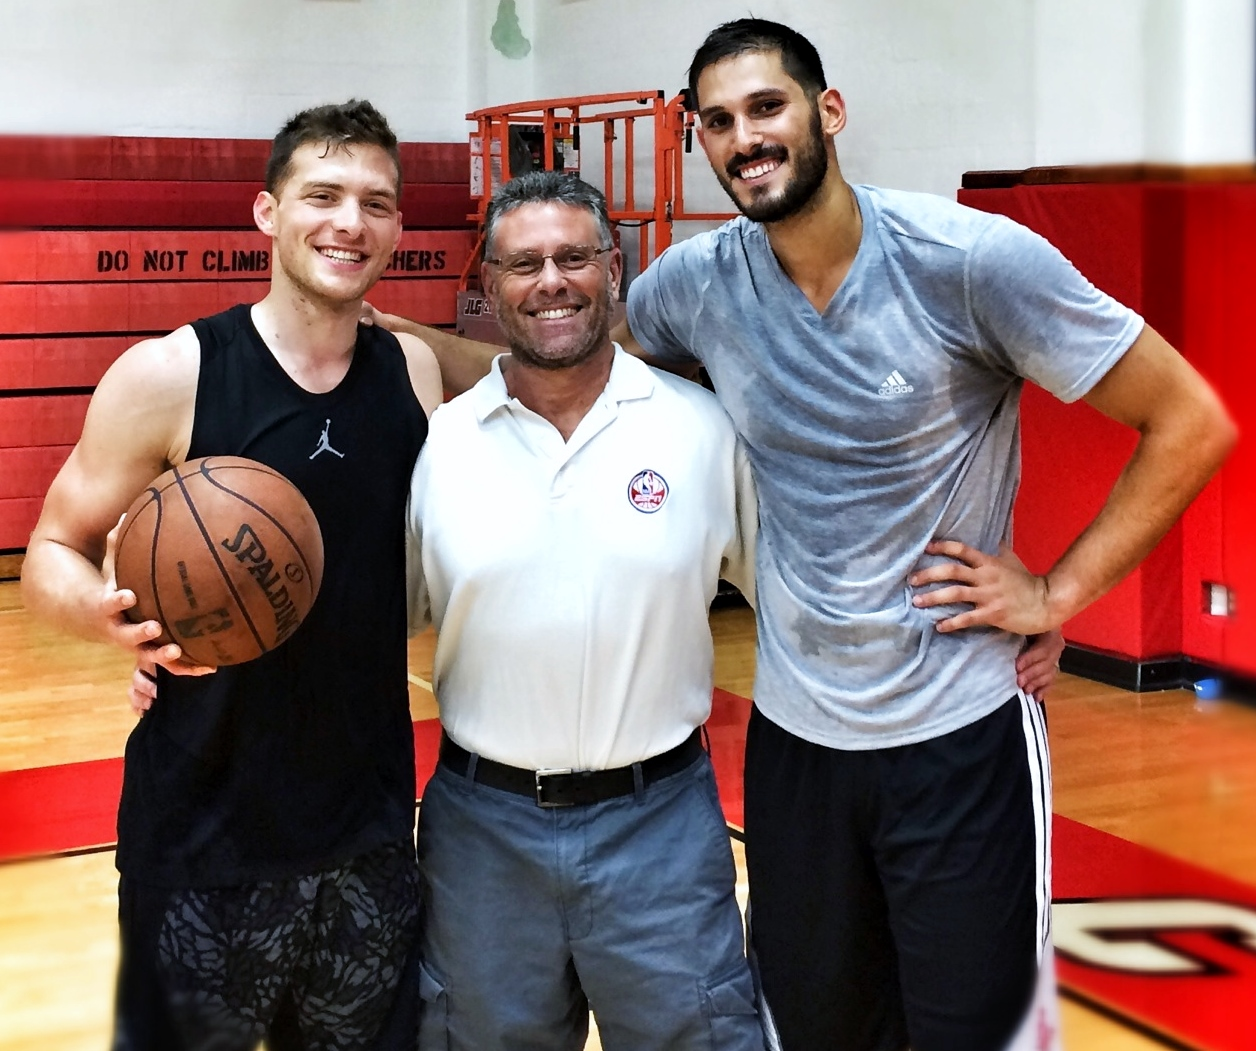 Trainer David Thorpe is flanked by two of his pupils, Israeli NBAers Gal Mekel, left, and Omri Casspi. (Courtesy David Thorpe)